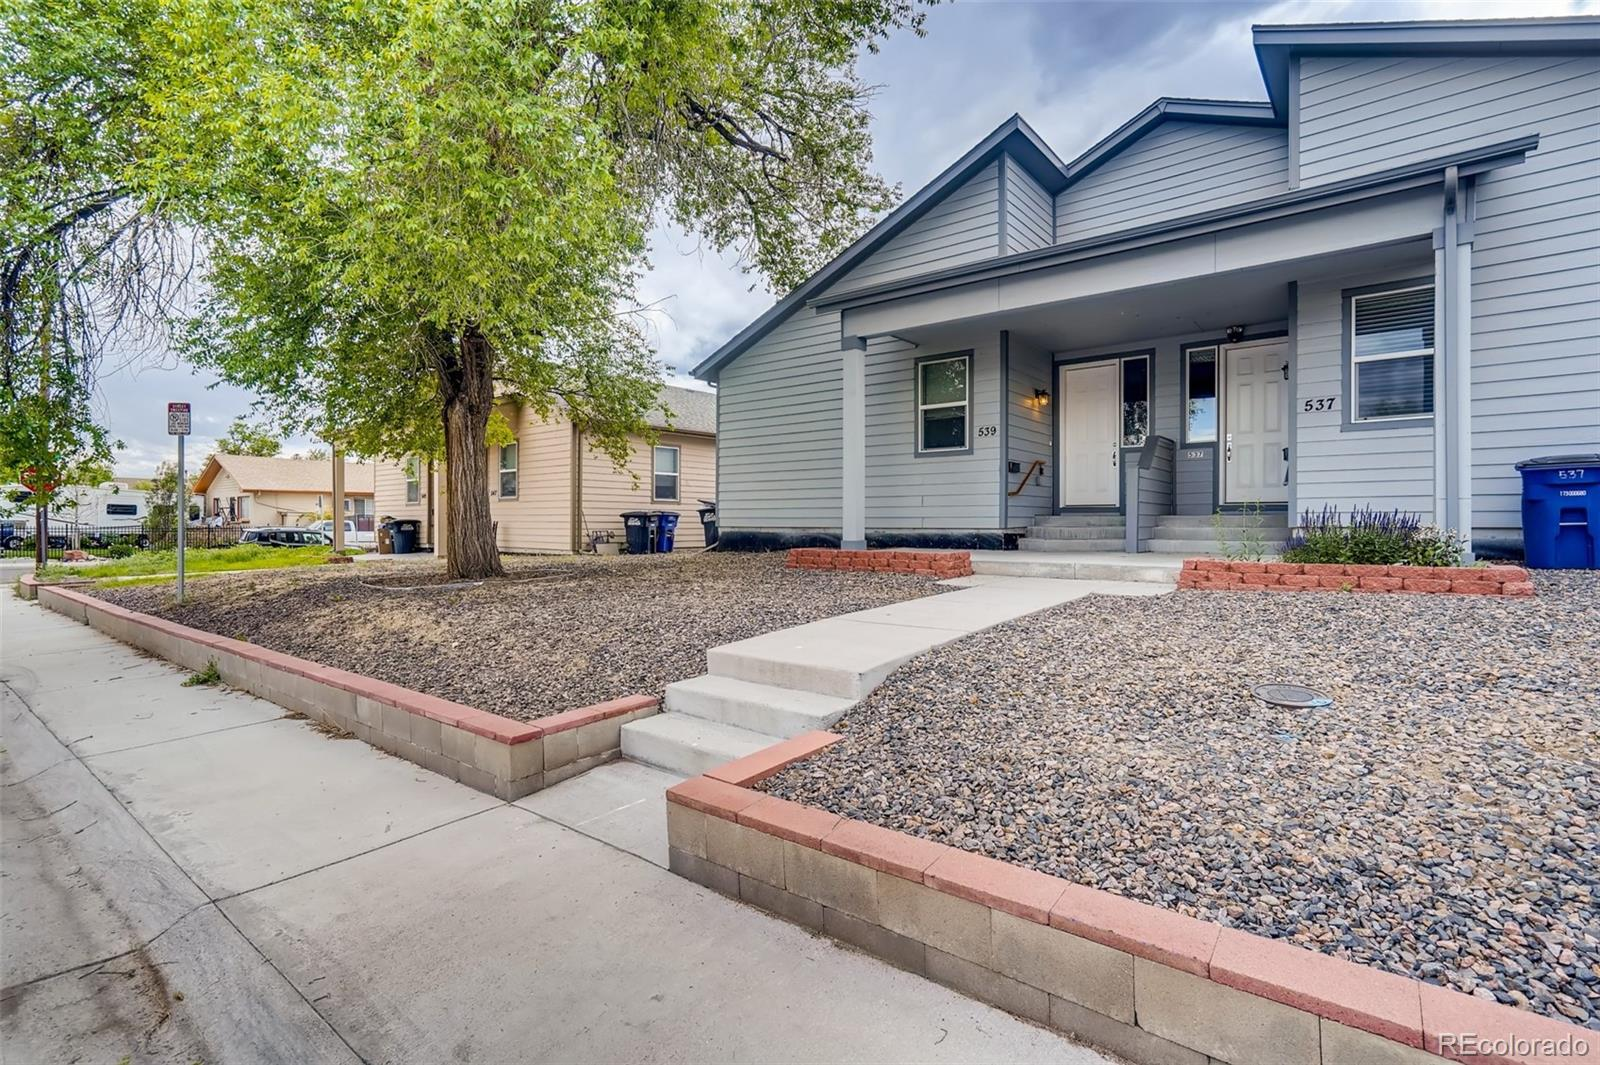 539 S Raleigh Street Property Photo - Denver, CO real estate listing